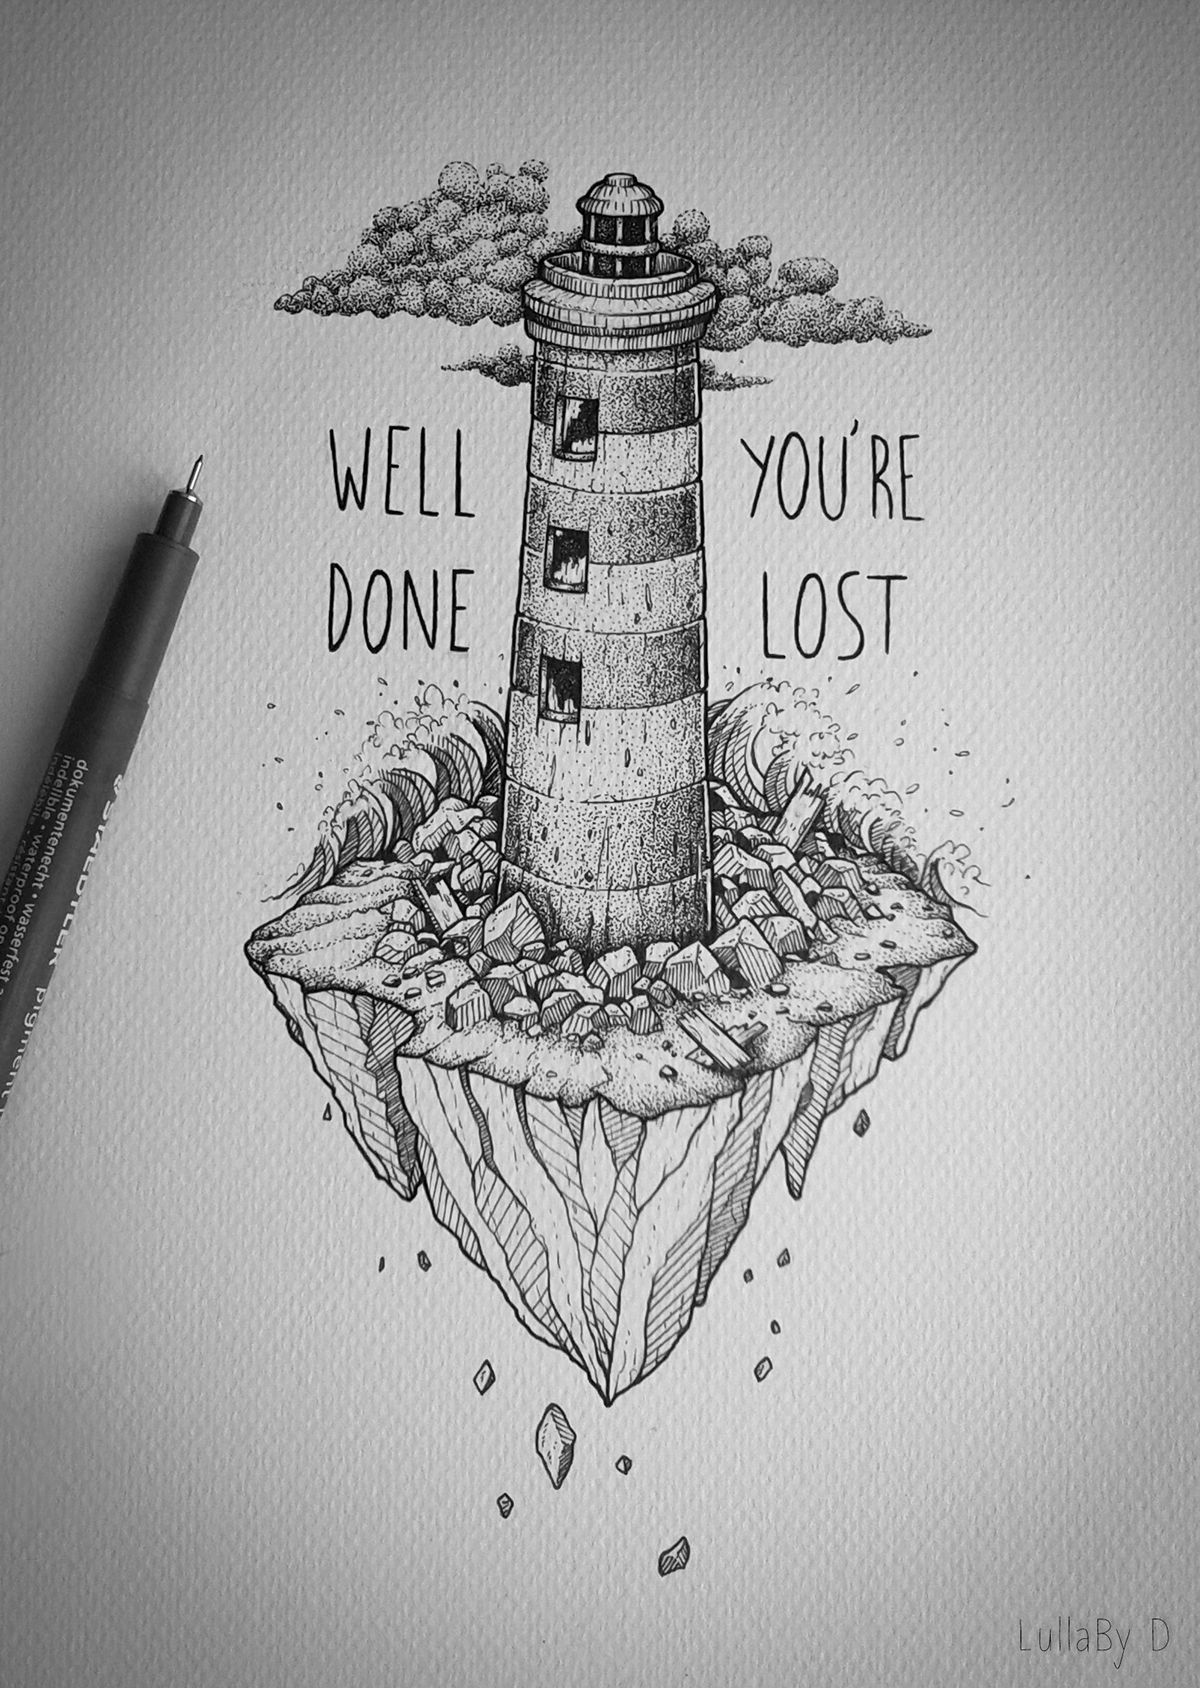 Well done, you're lost ! on Behance